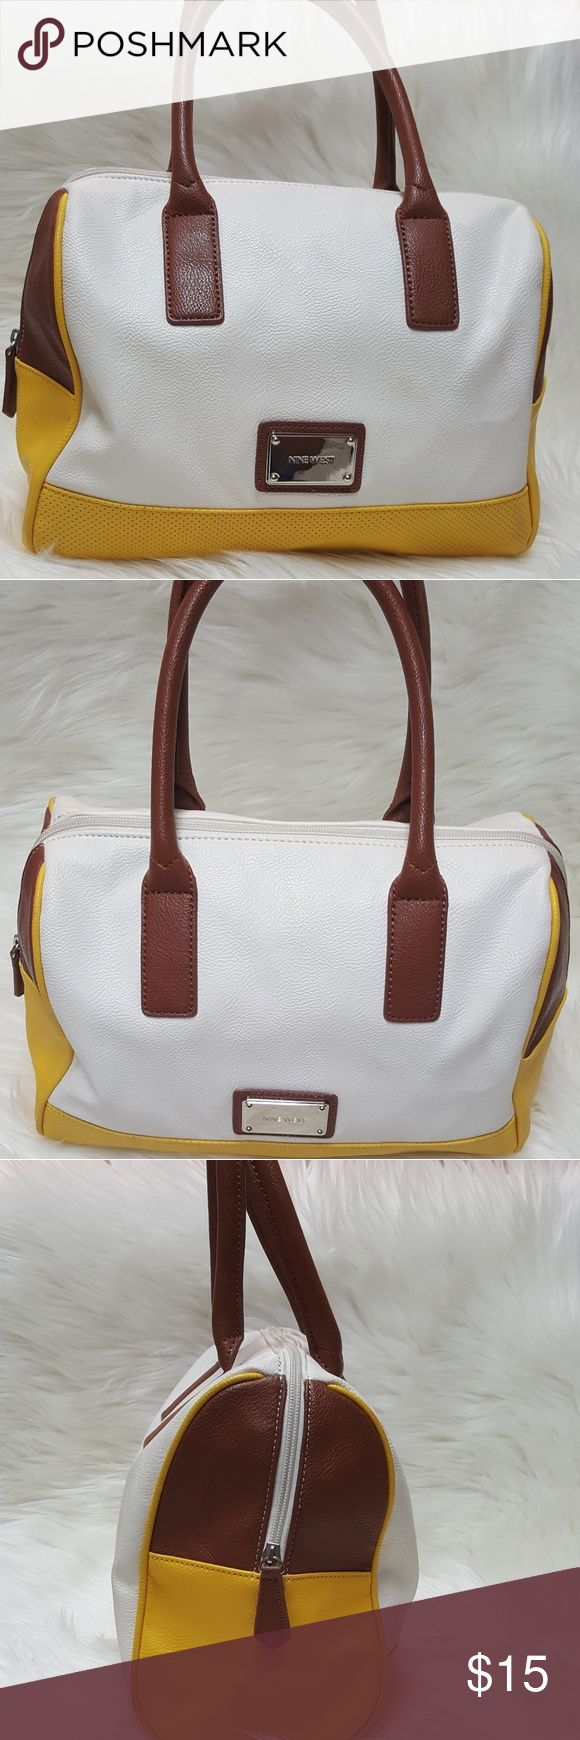 """NINE WEST shoulder bag color block design NINE WEST shoulder bag color block design, man made materials, has a couple of small scuffs on outside of bag Measurements are approximate  12 x 10 x 4 5"""" strap drop height Nine West Bags Shoulder Bags"""